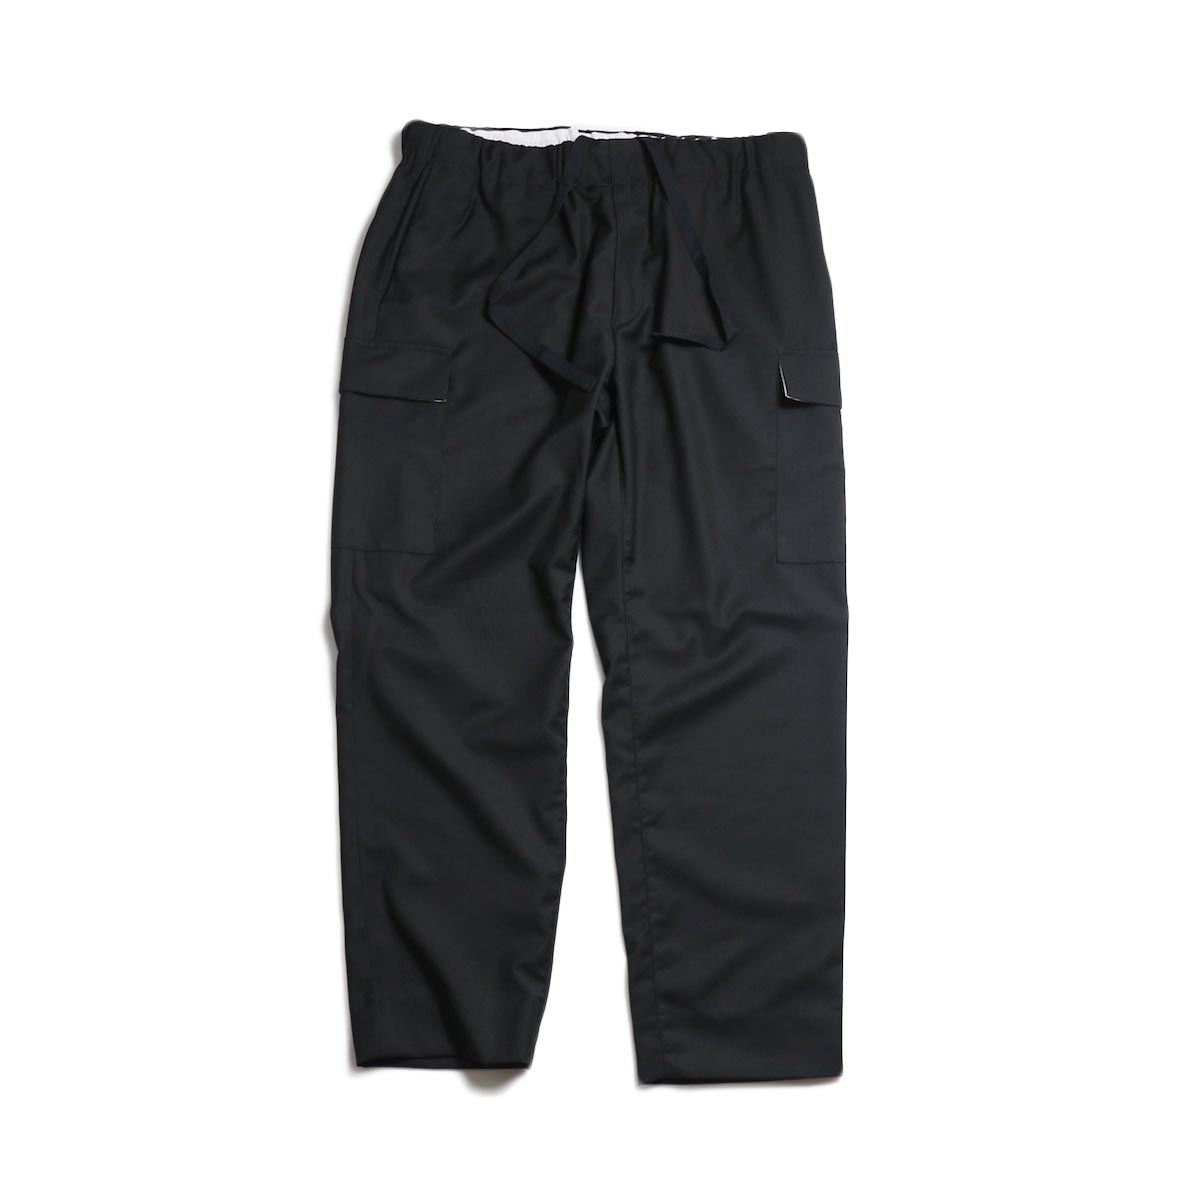 FUTURE PRIMITIVE / FP EASY CARGO PANTS -Black